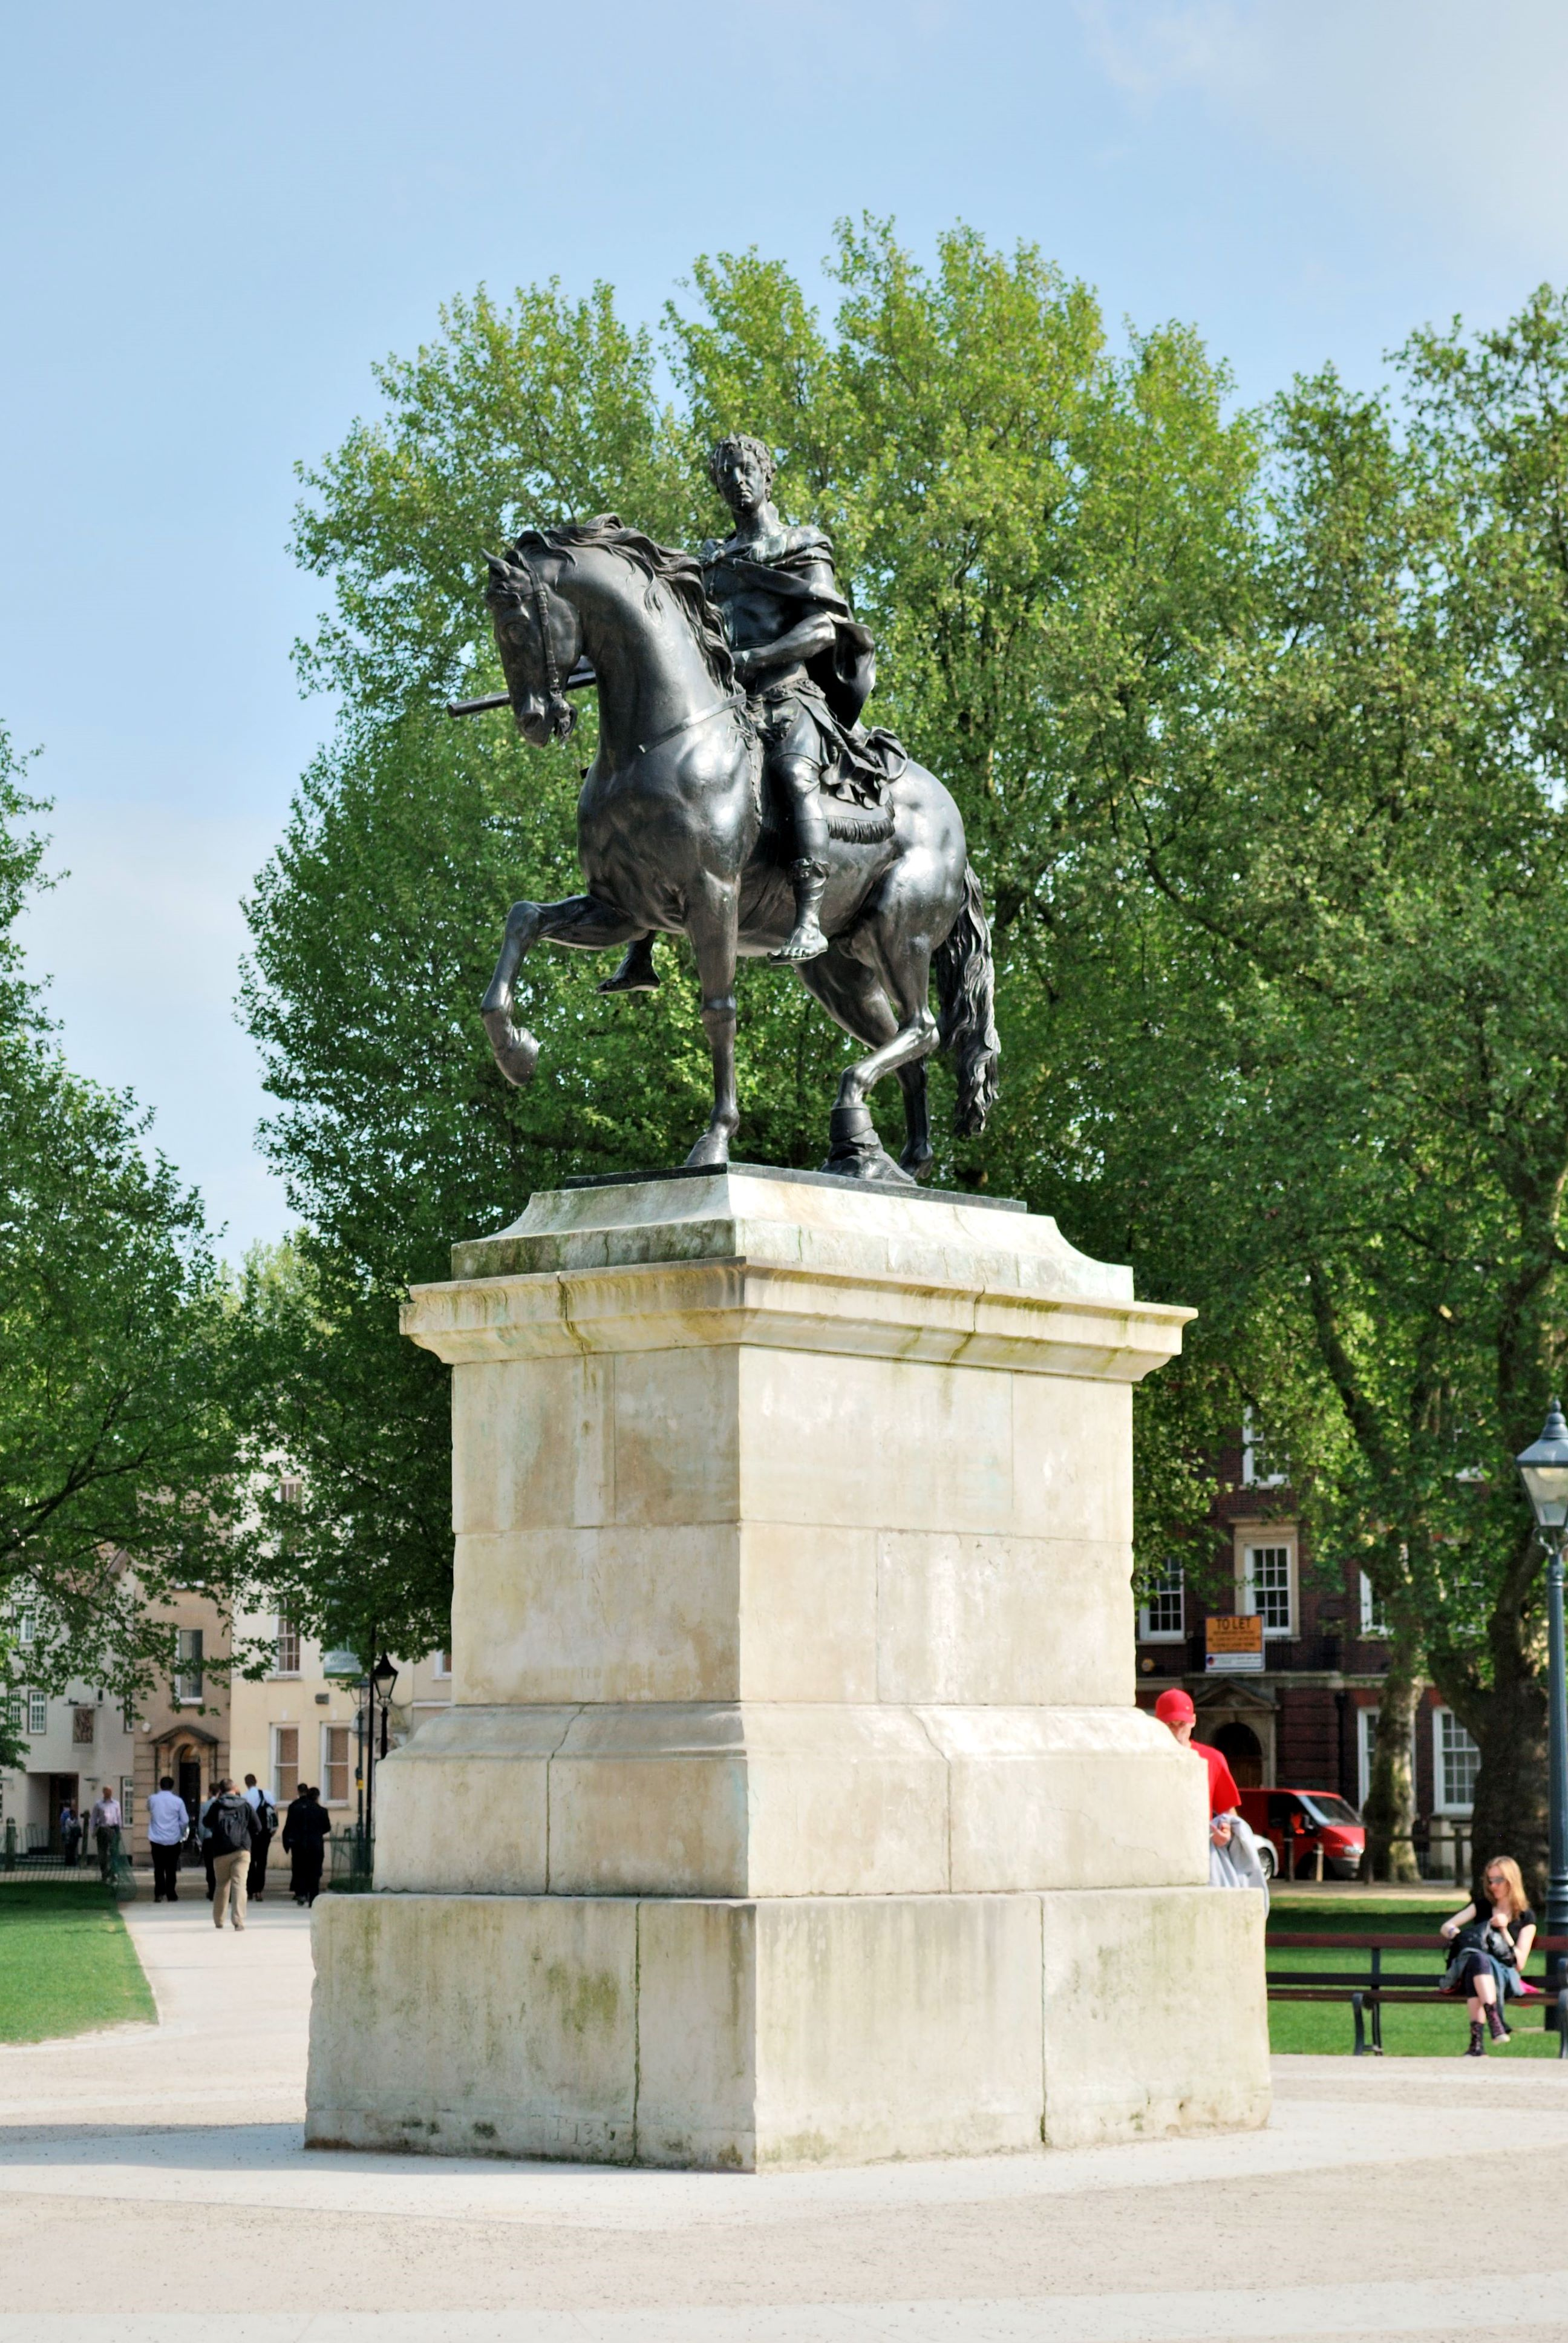 Queen_Square,_BristolKing_William_III_statue_